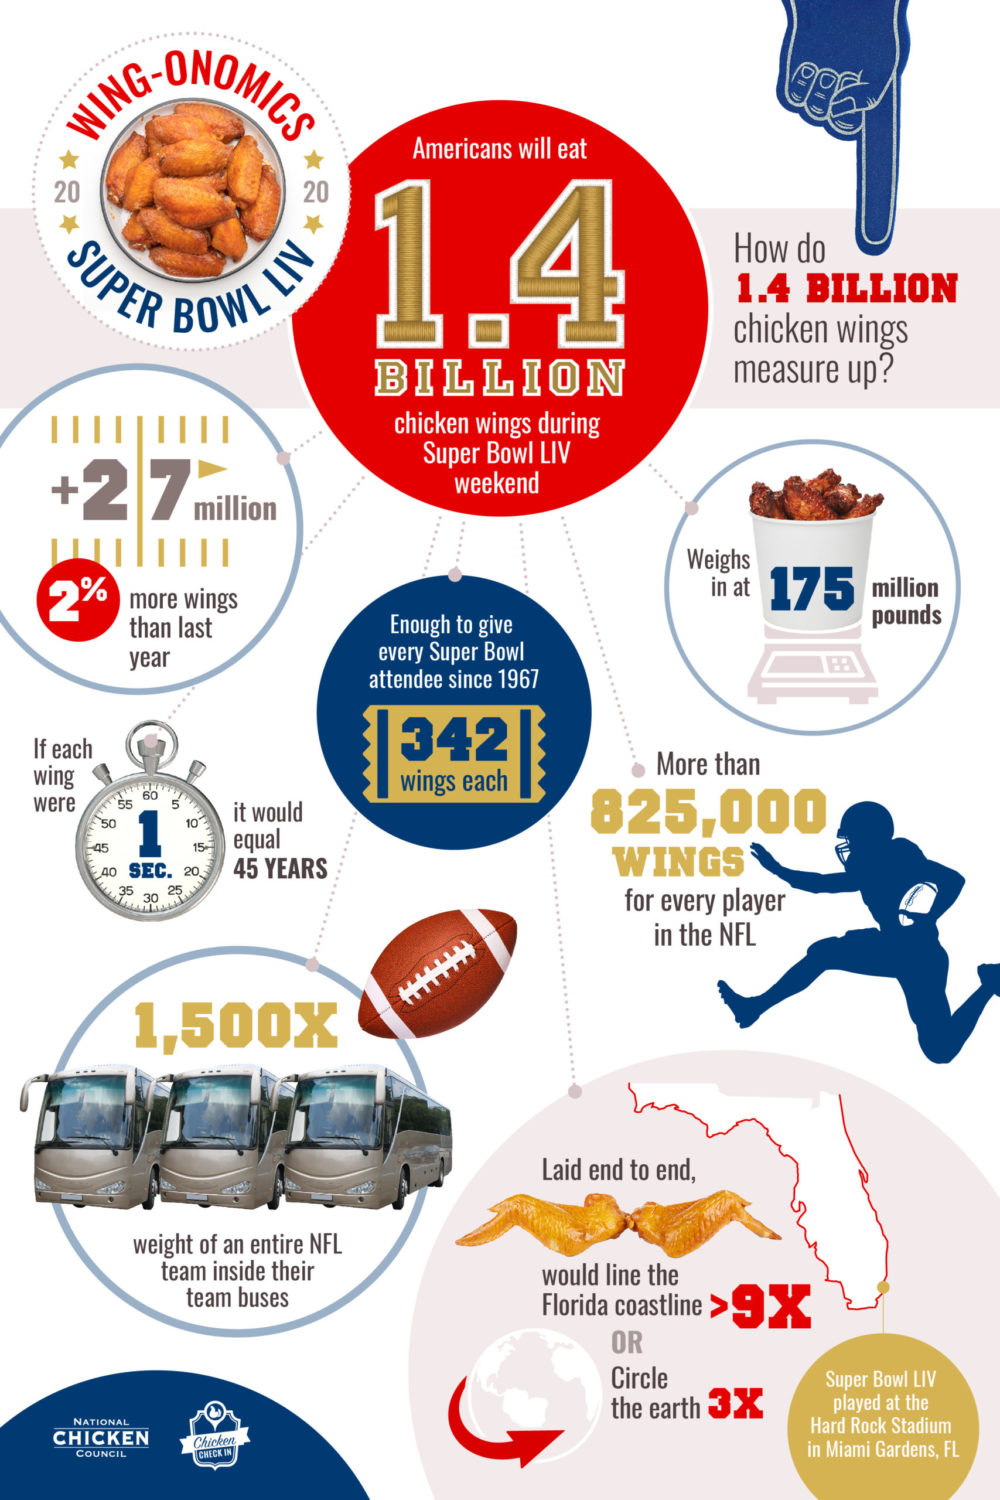 This year, Americans will eat an estimated record-breaking 1.4 billion chicken wings during Super Bowl LIV weekend – or approximately 27 million more wings (a two percent increase) than last year's Super Bowl weekend.